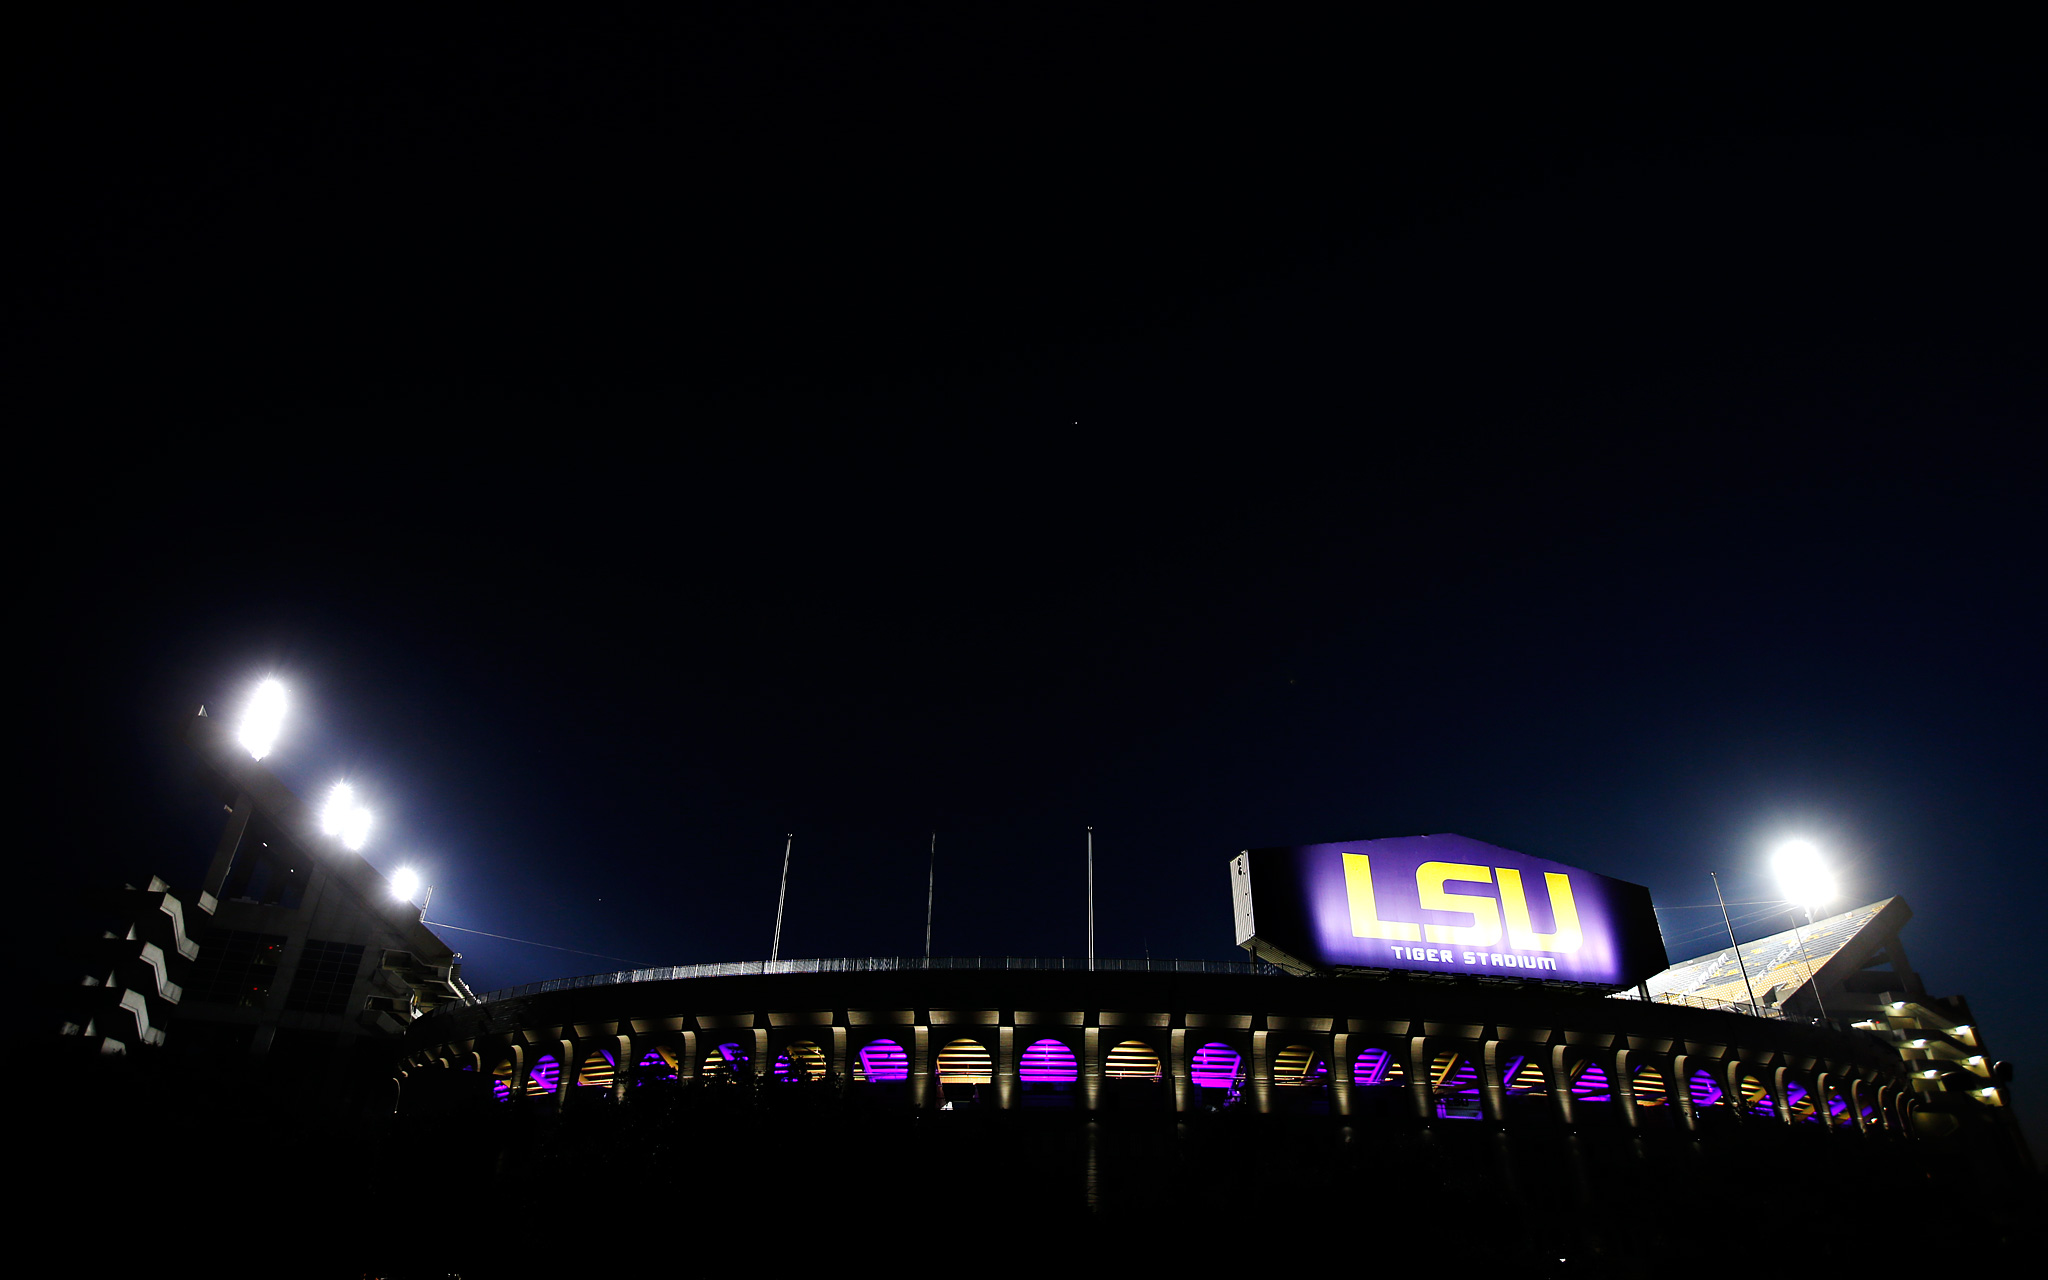 Tiger Stadium at Night